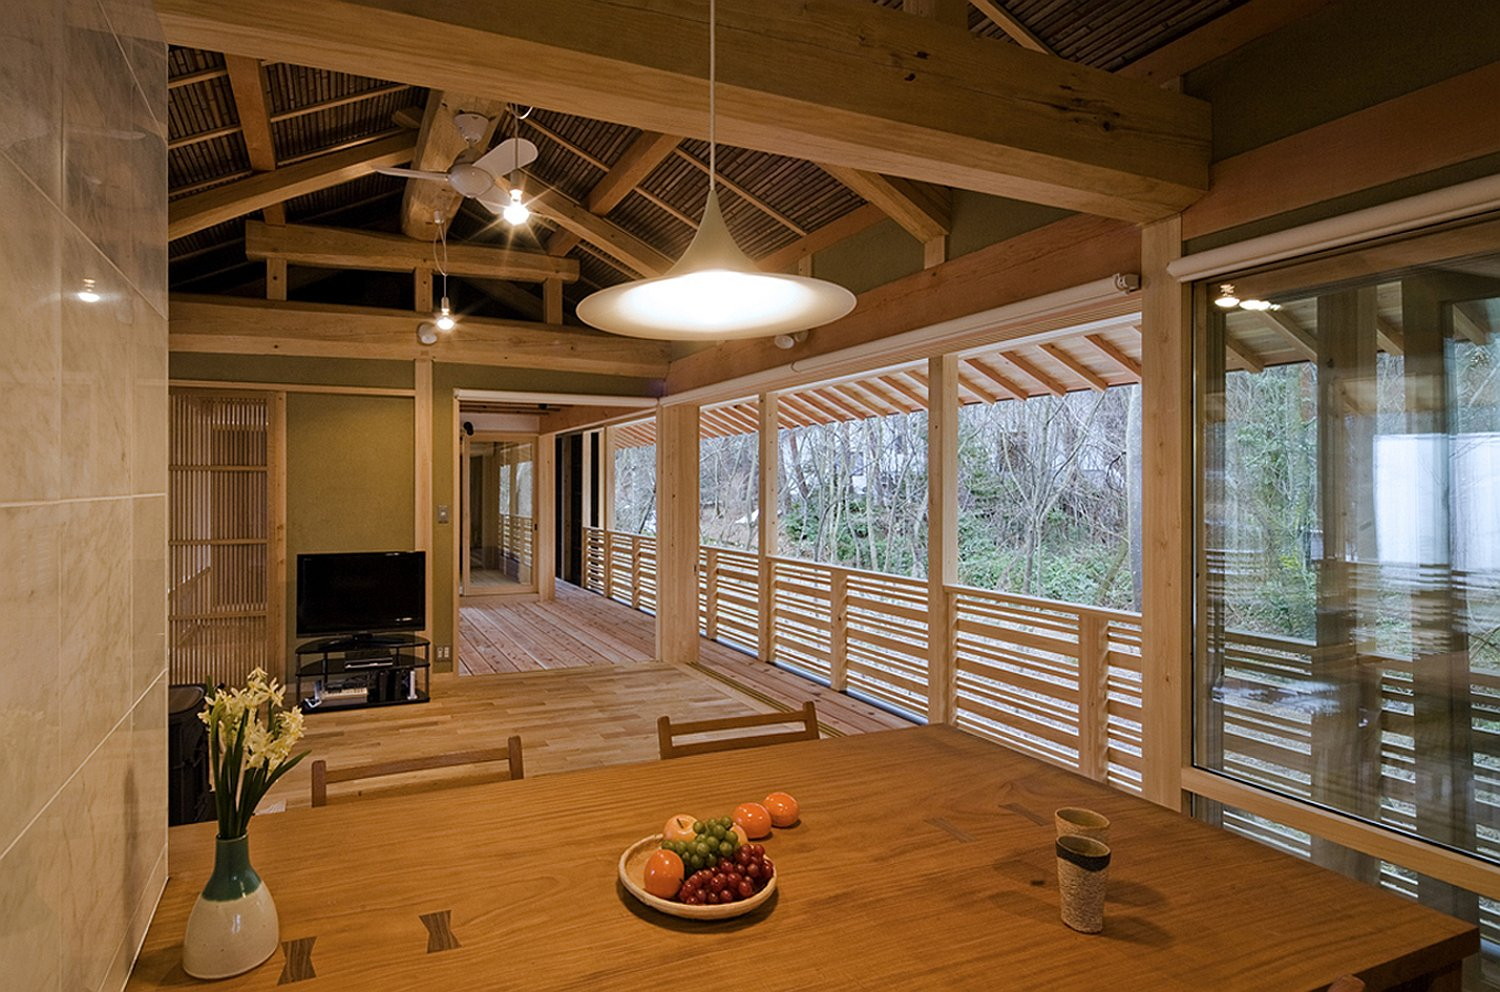 A new home built in traditional Japanese style Osumi Yuso